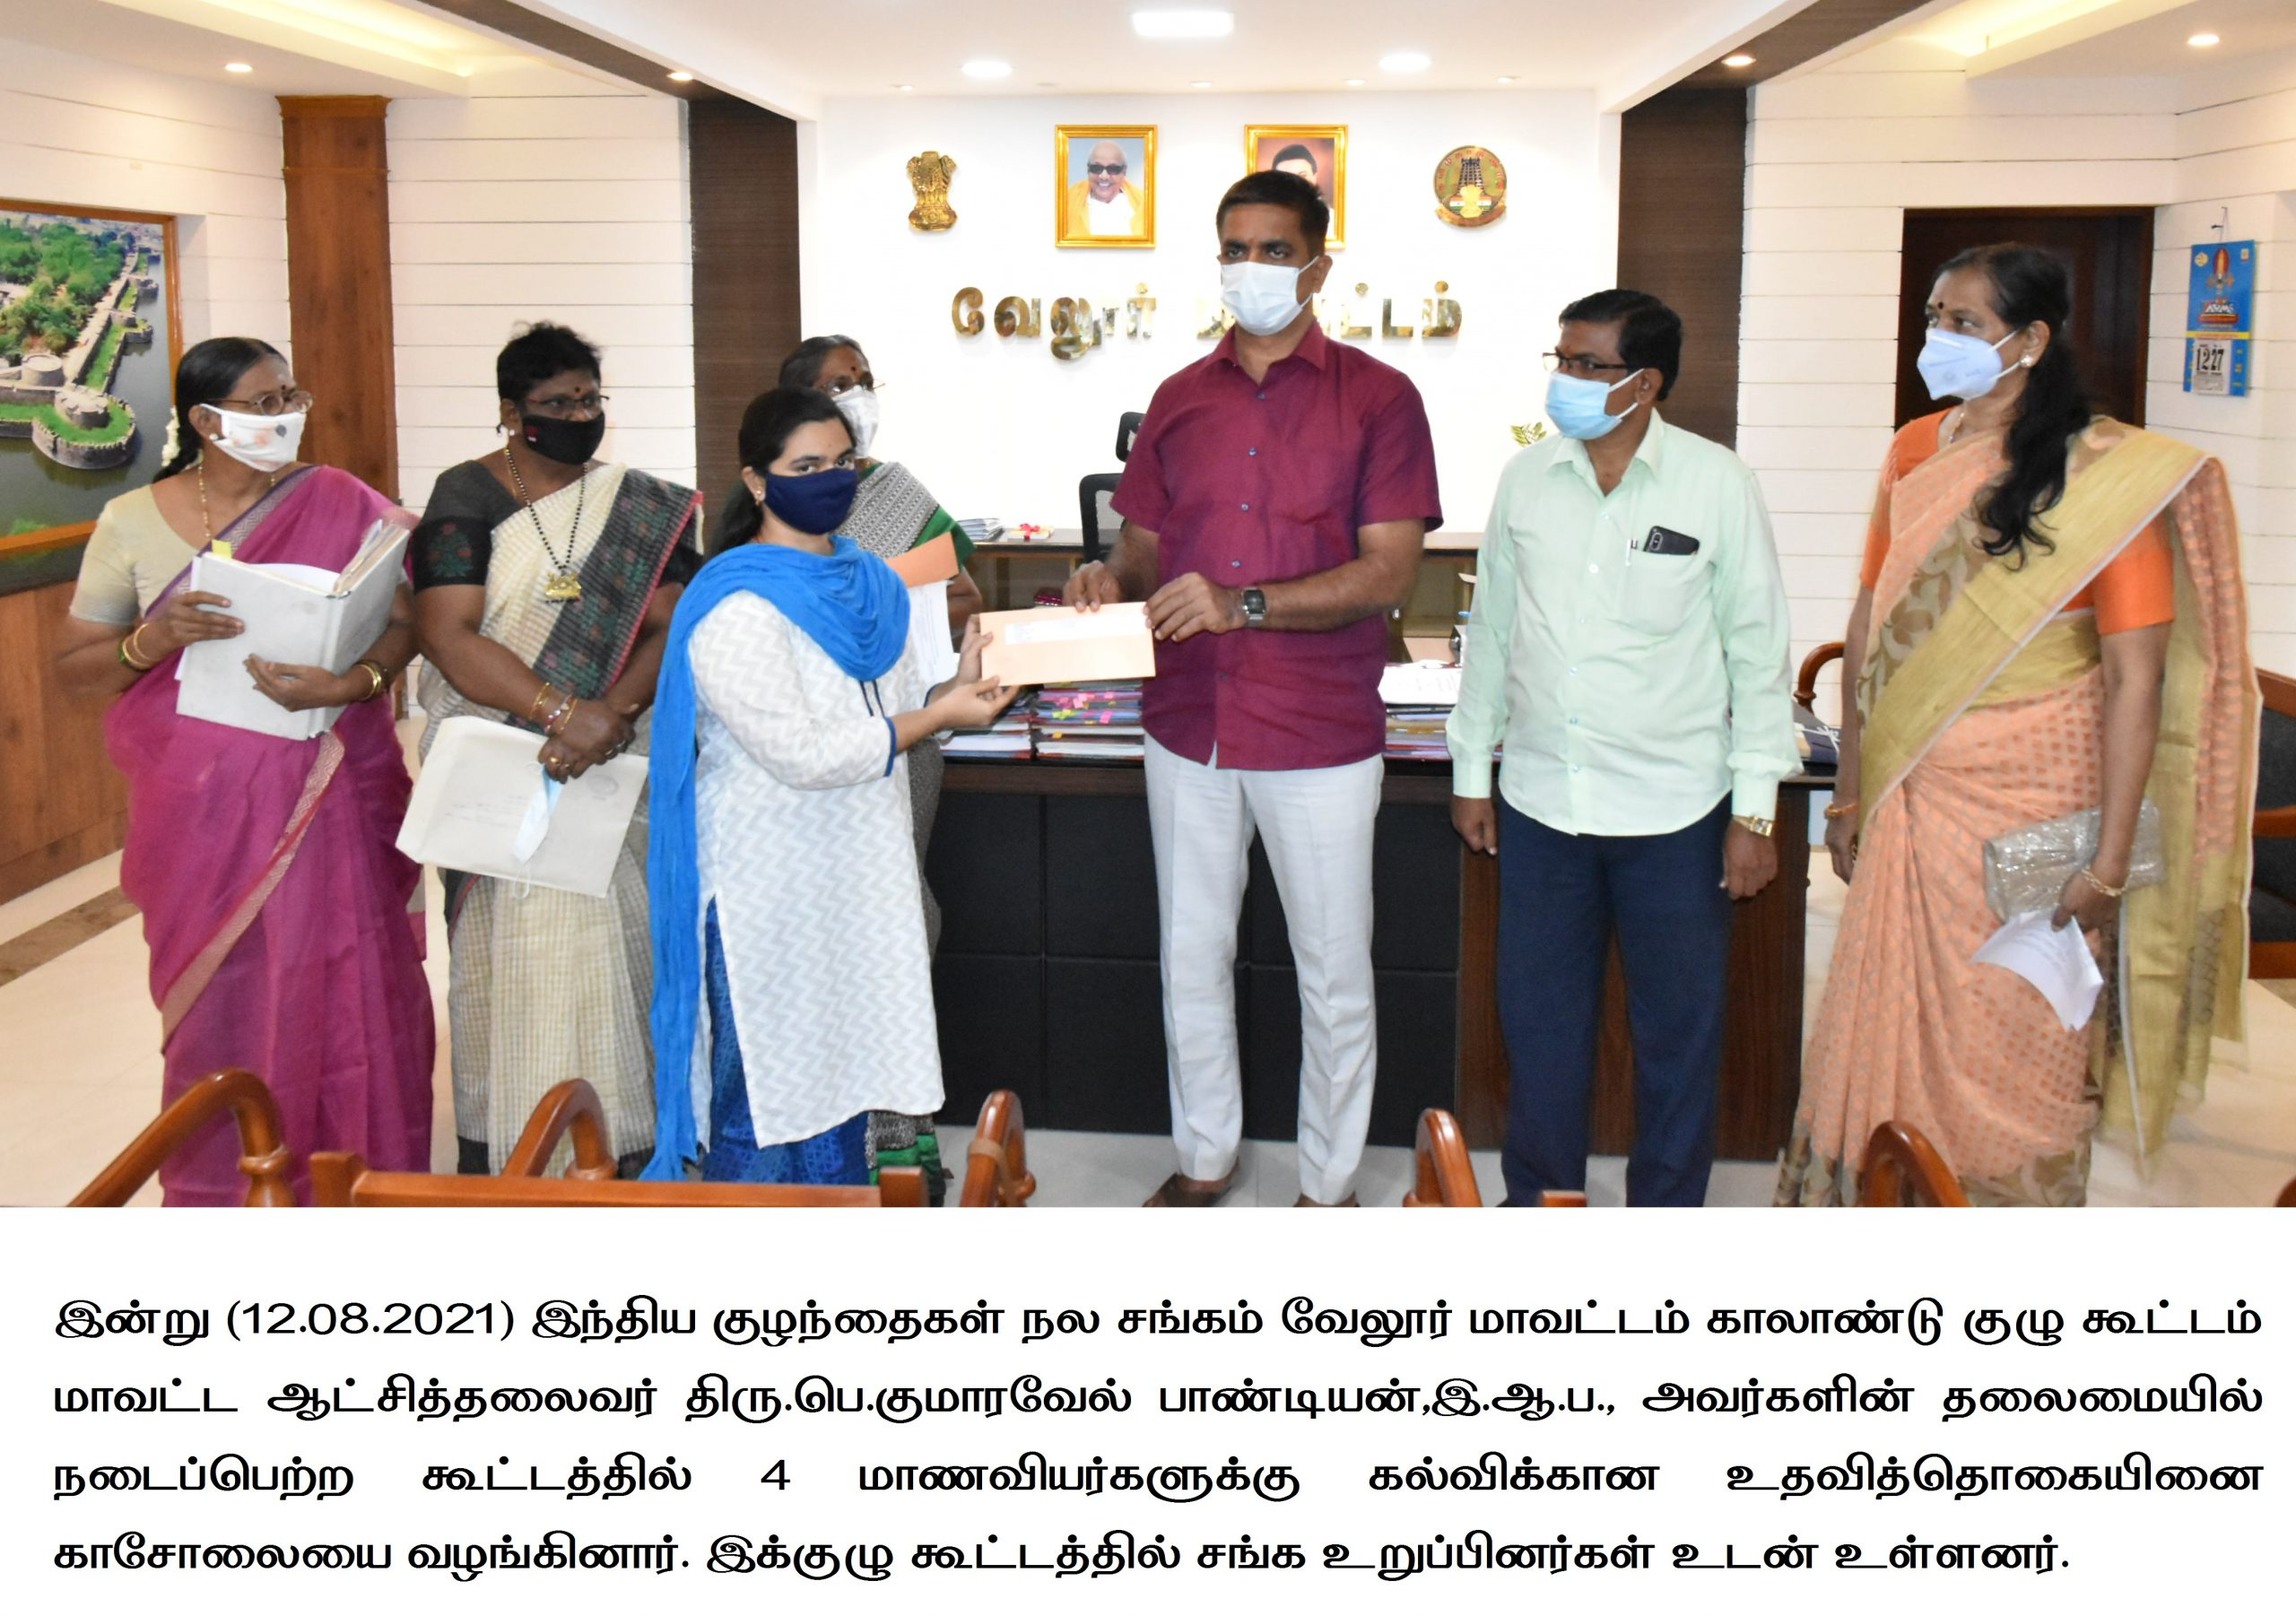 District Collector Given Educational Scholarship to Students 11-08-2021